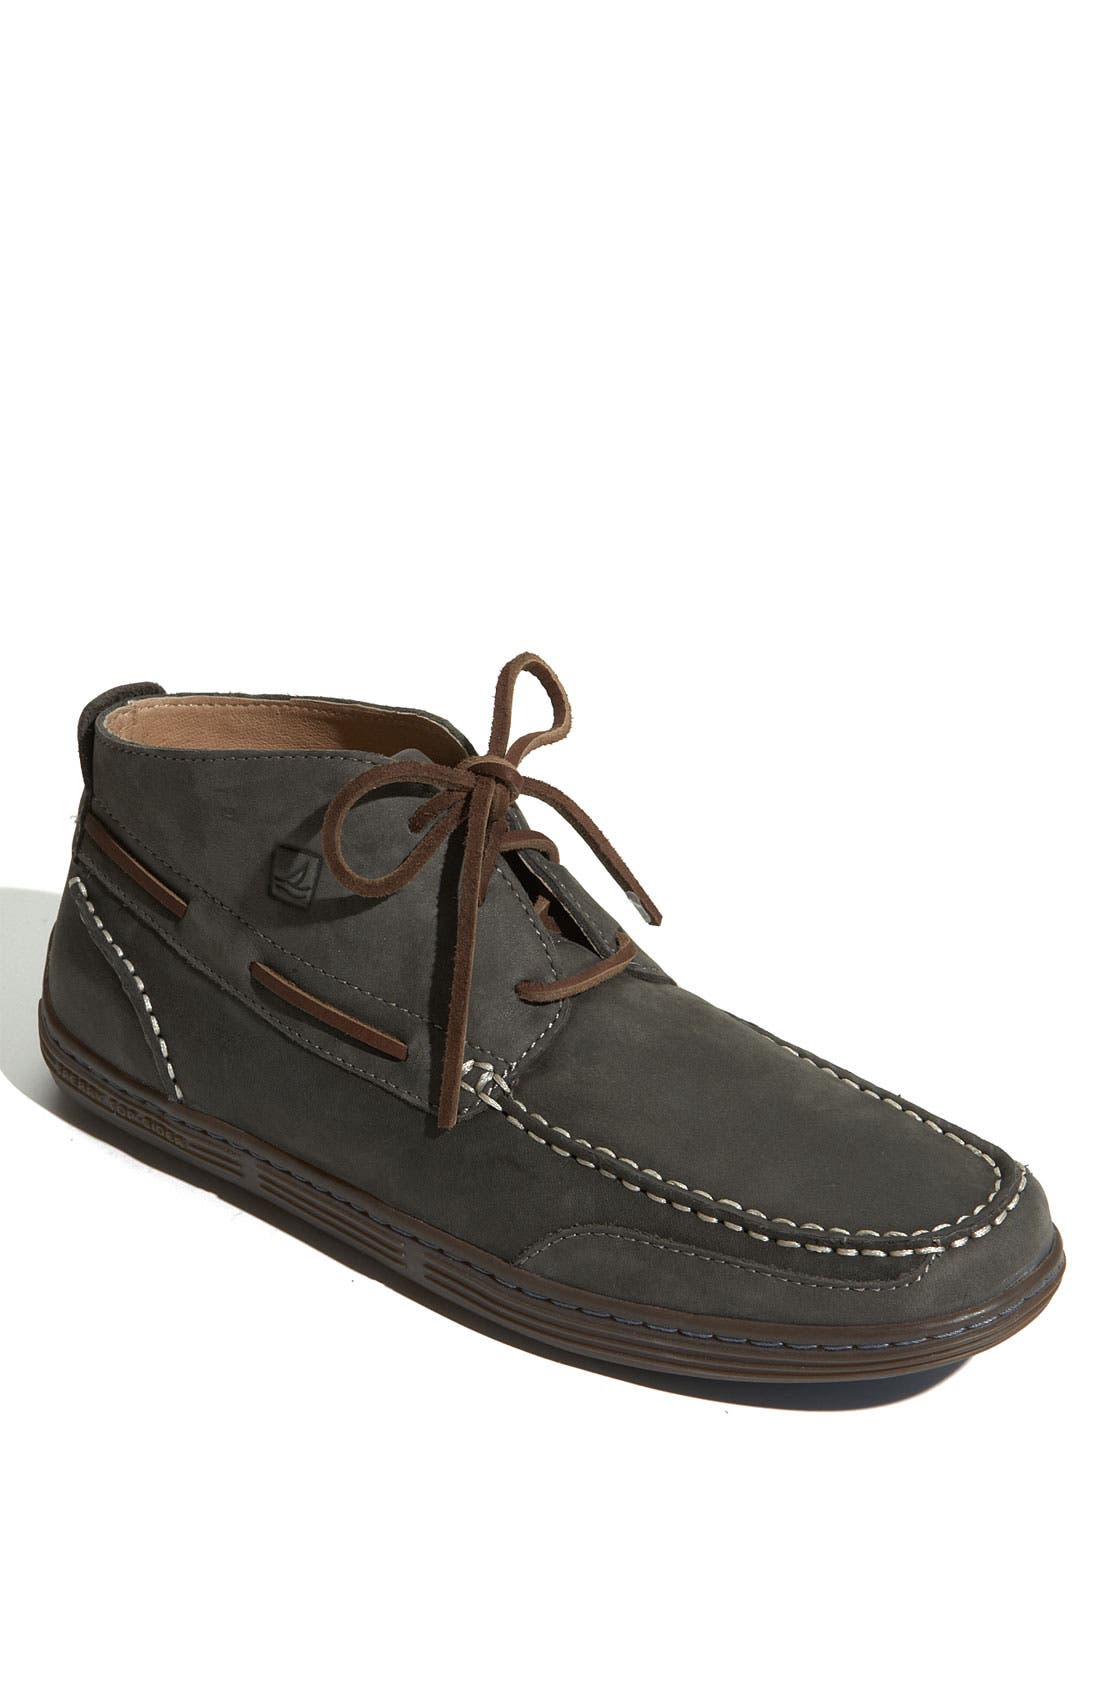 Alternate Image 1 Selected - Sperry Top-Sider® 'Harbor' Chukka Boot